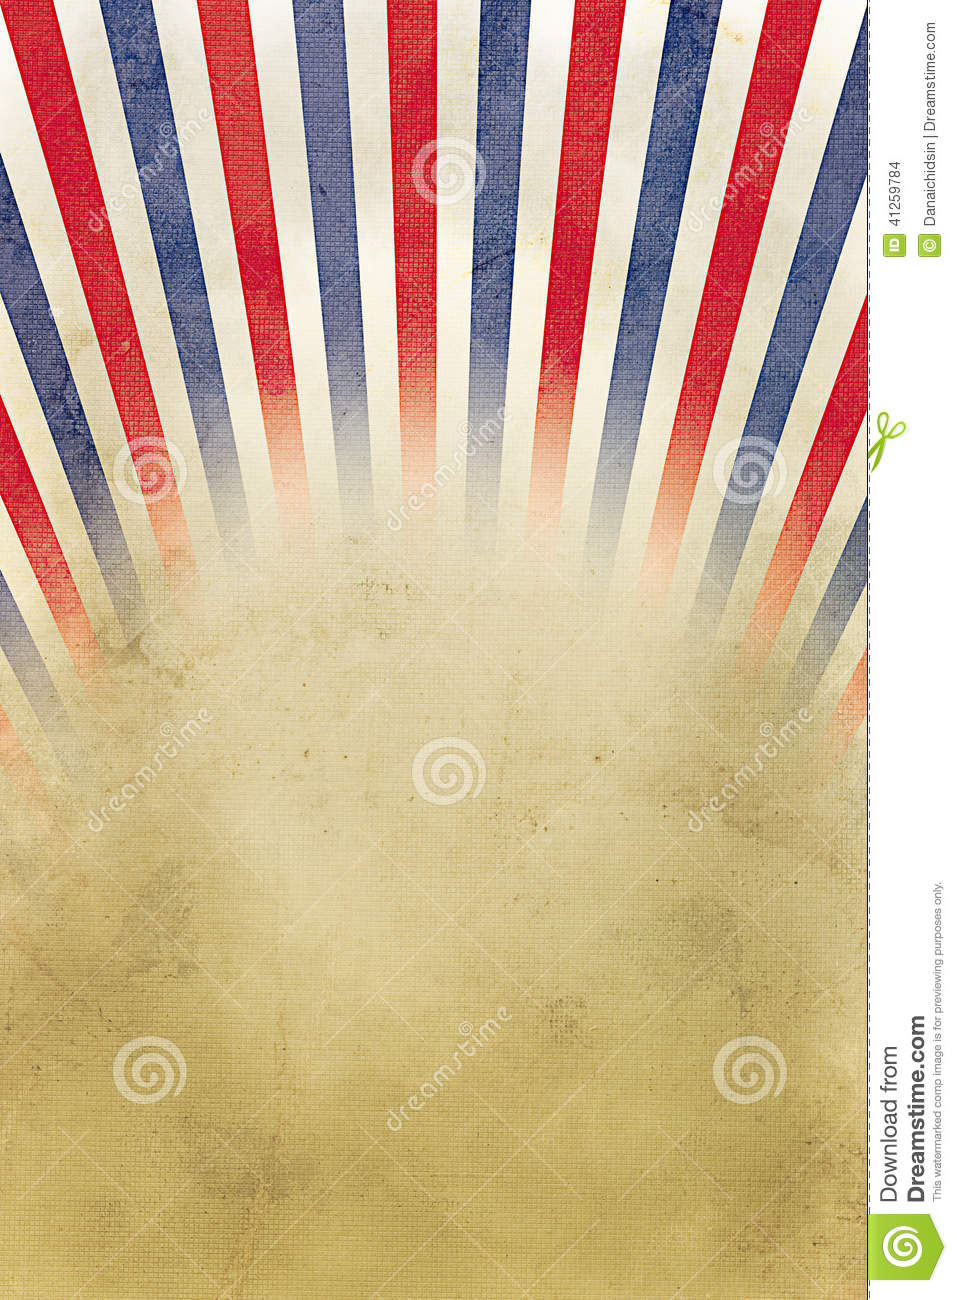 Retro Background Red, White And Blue Stripes Stock ...